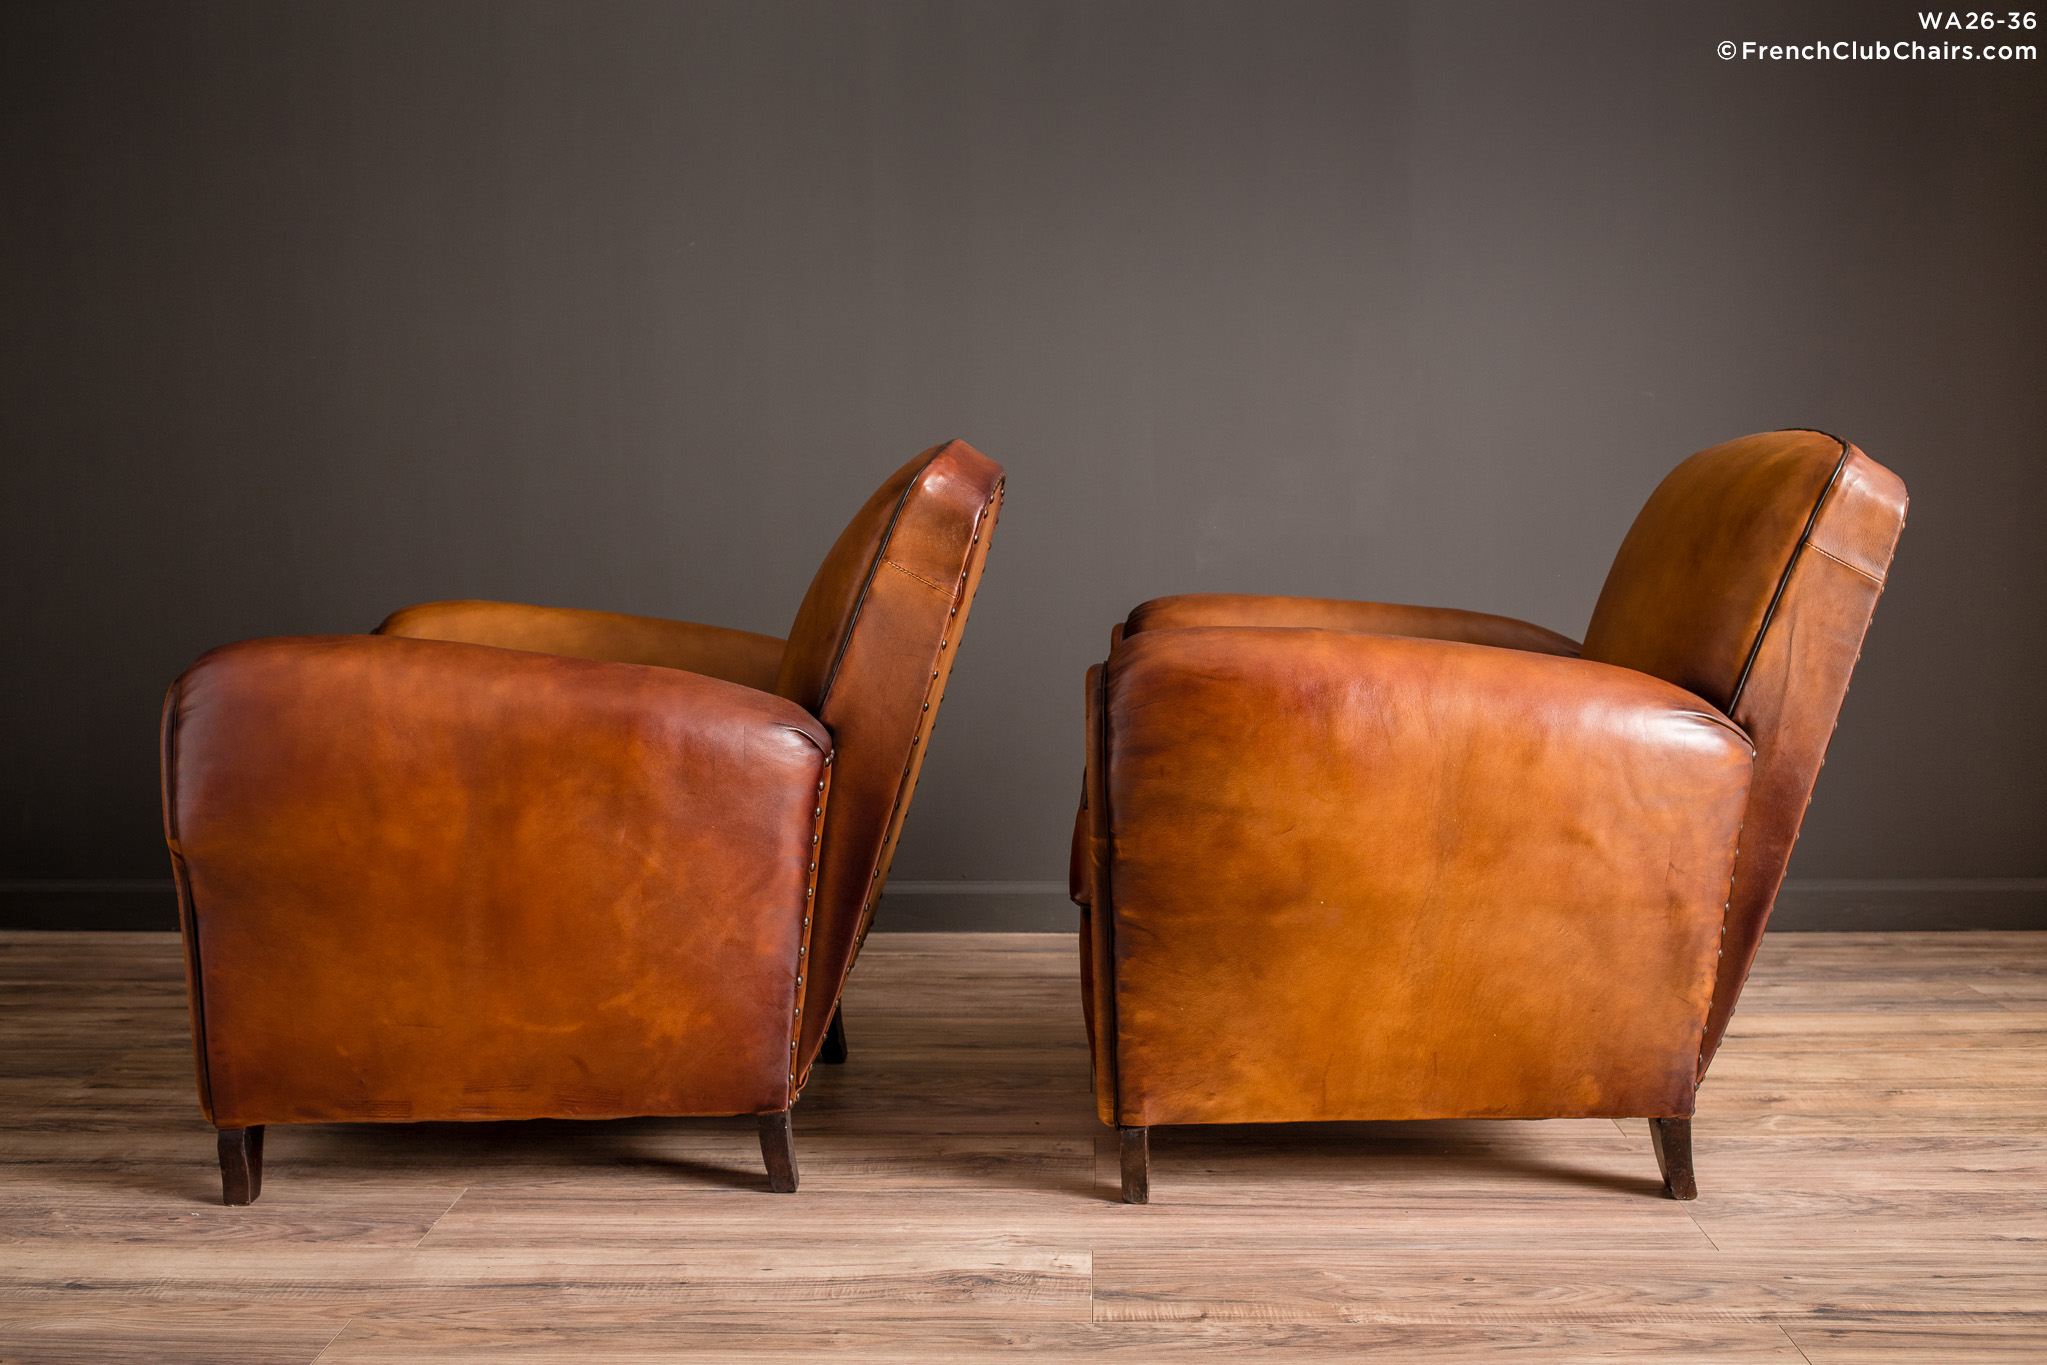 WA_26-36_Valerie_Library_Pair_R_4LT-v01-williams-antiks-leather-french-club-chair-wa_fcccom